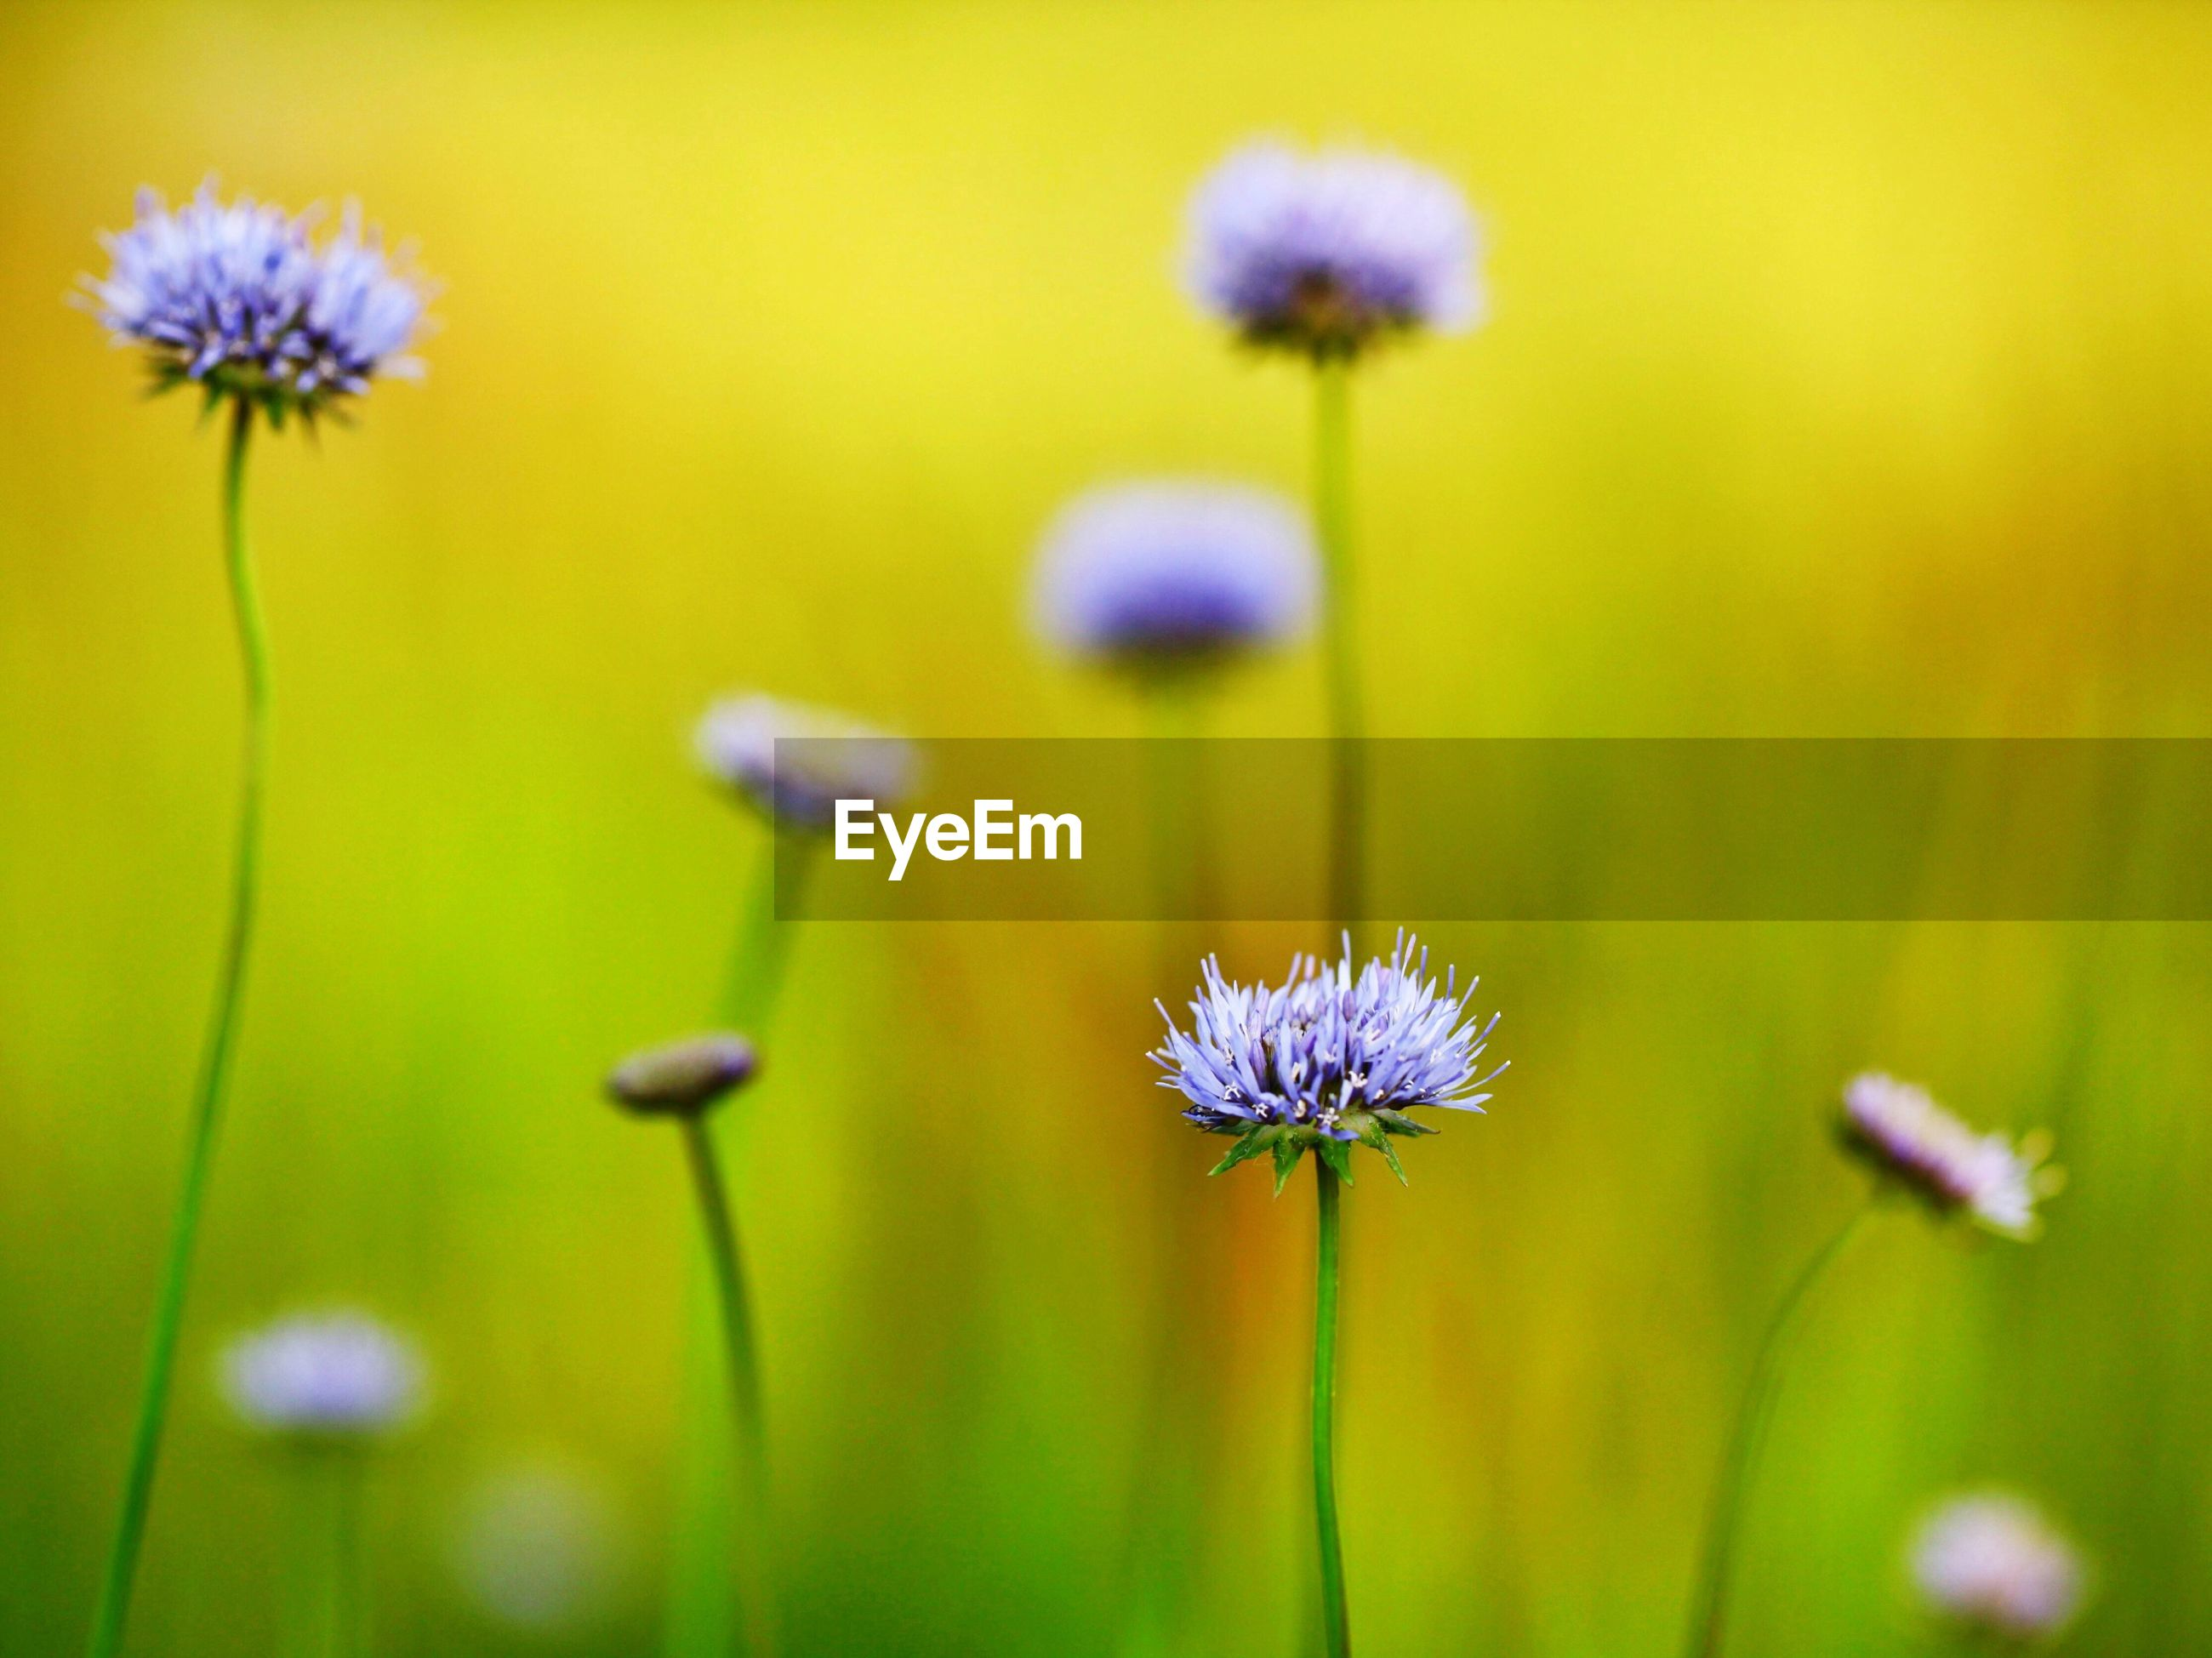 flower, nature, growth, fragility, beauty in nature, flower head, plant, petal, freshness, purple, no people, field, selective focus, close-up, focus on foreground, blooming, outdoors, yellow, uncultivated, day, cosmos flower, thistle